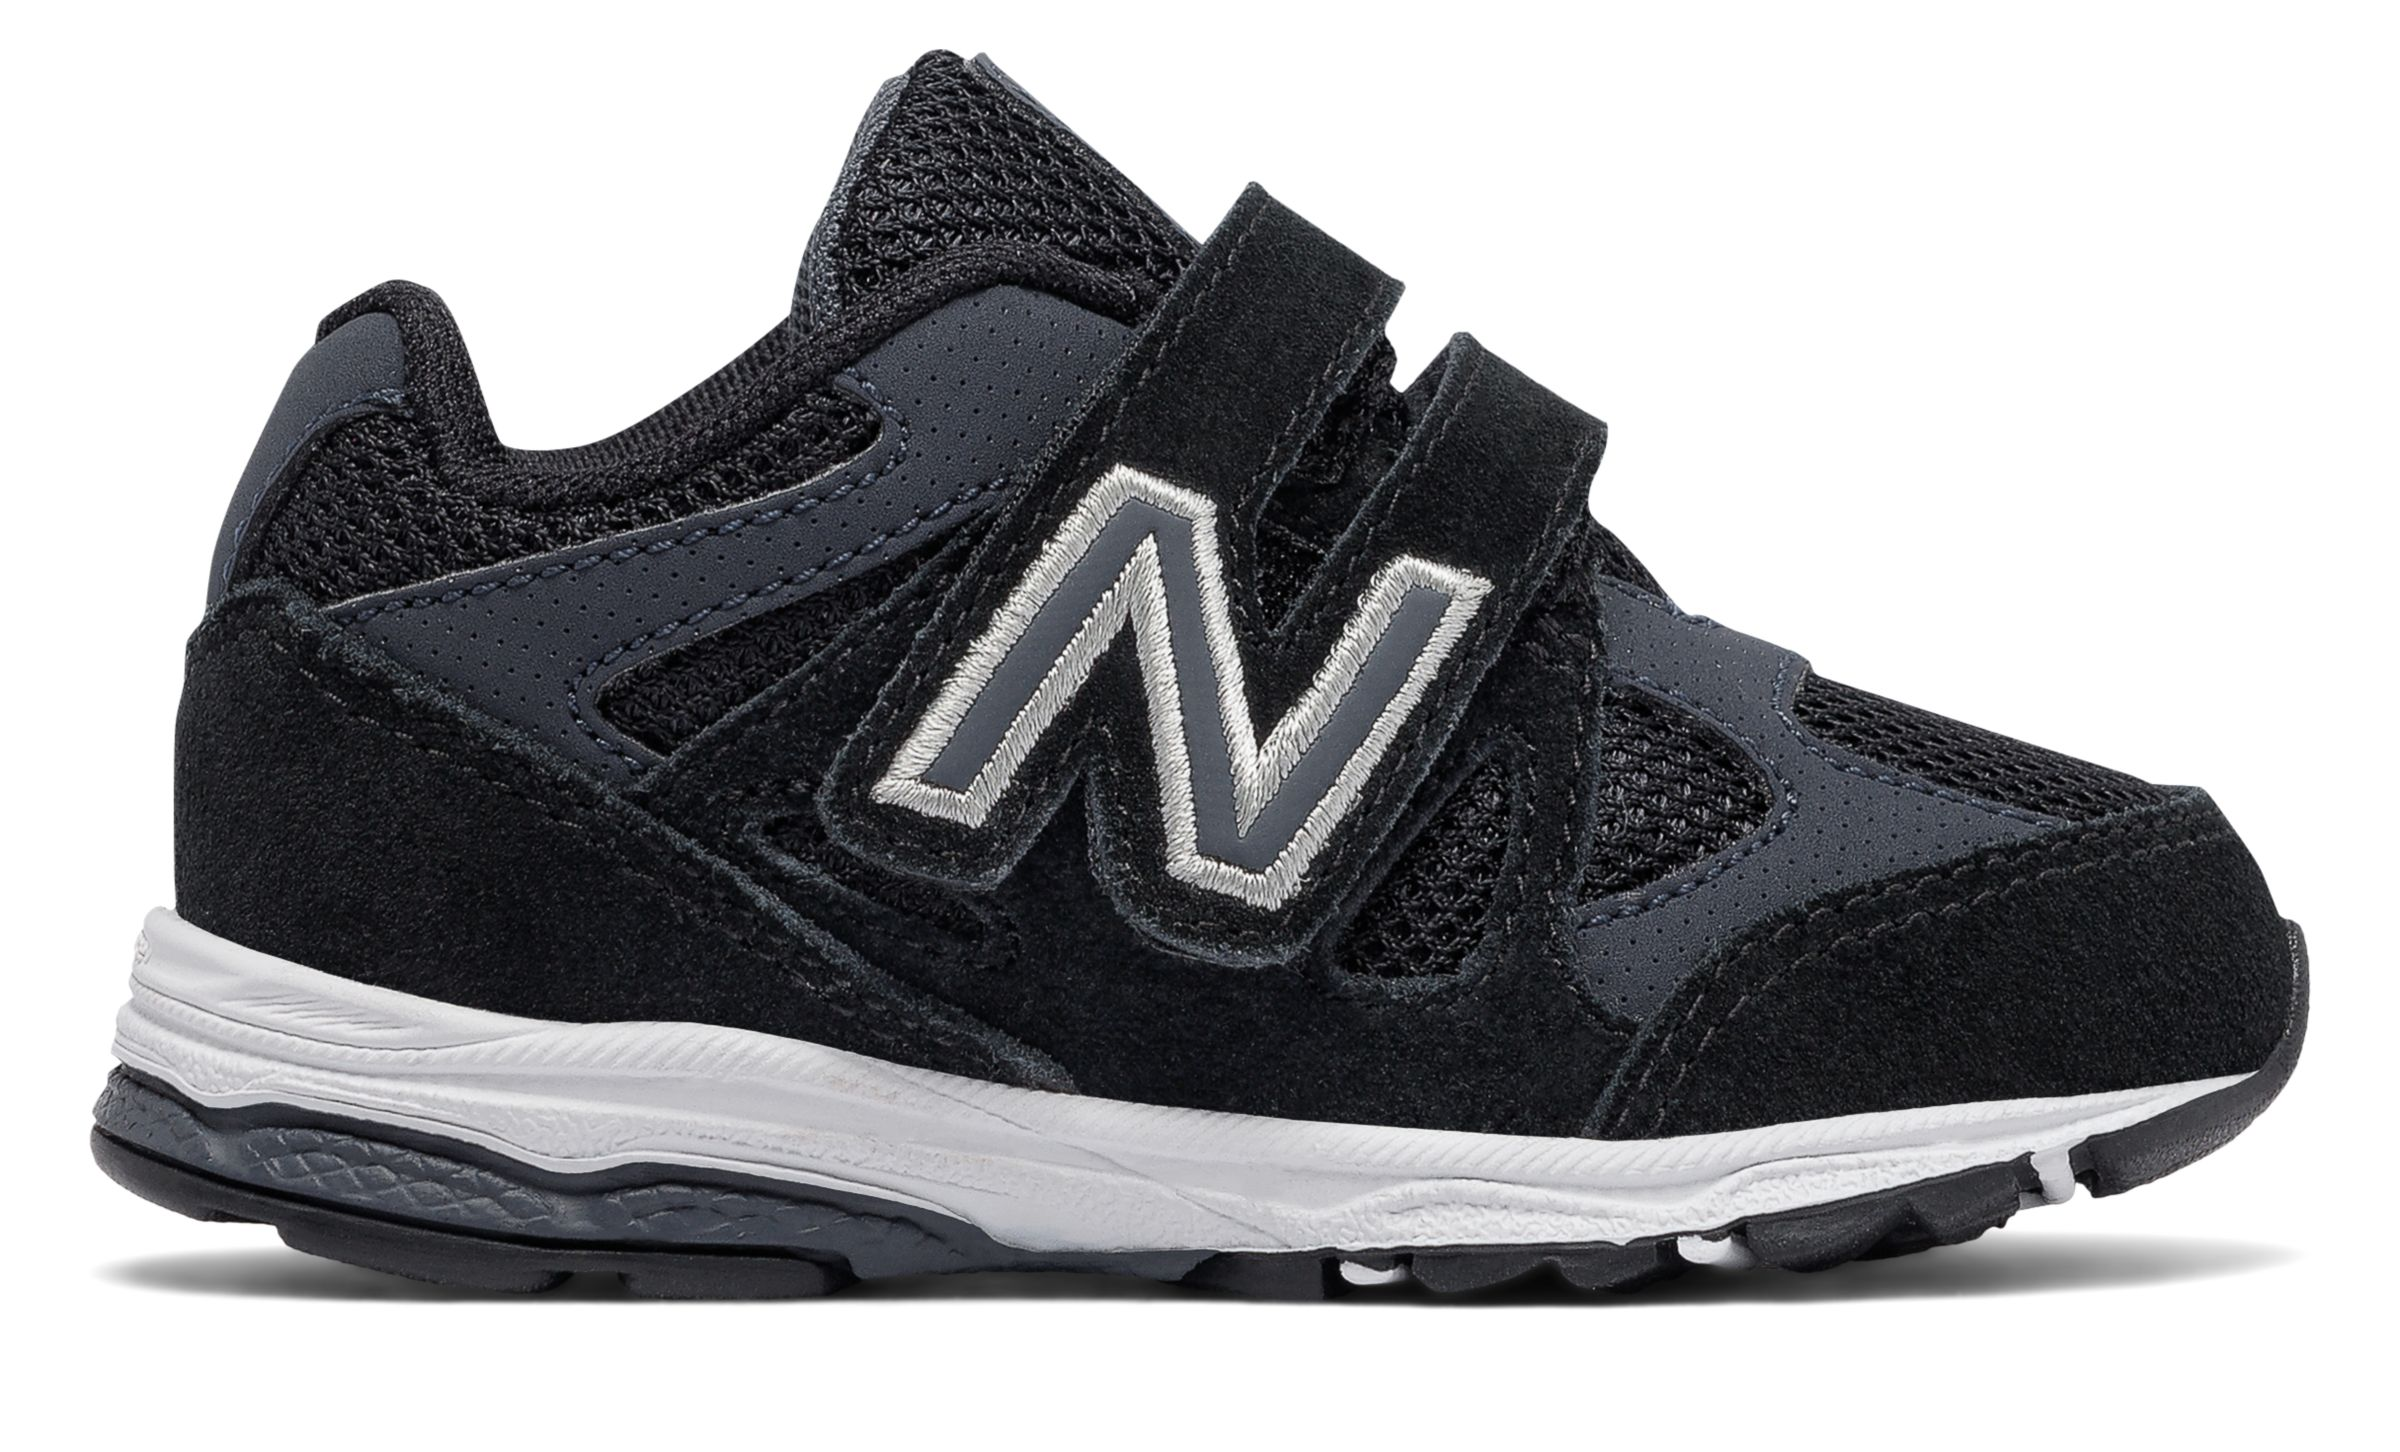 Details about New Balance Male Kid's Hook And Loop 888 Classic Comfort Sneaker Black With Grey